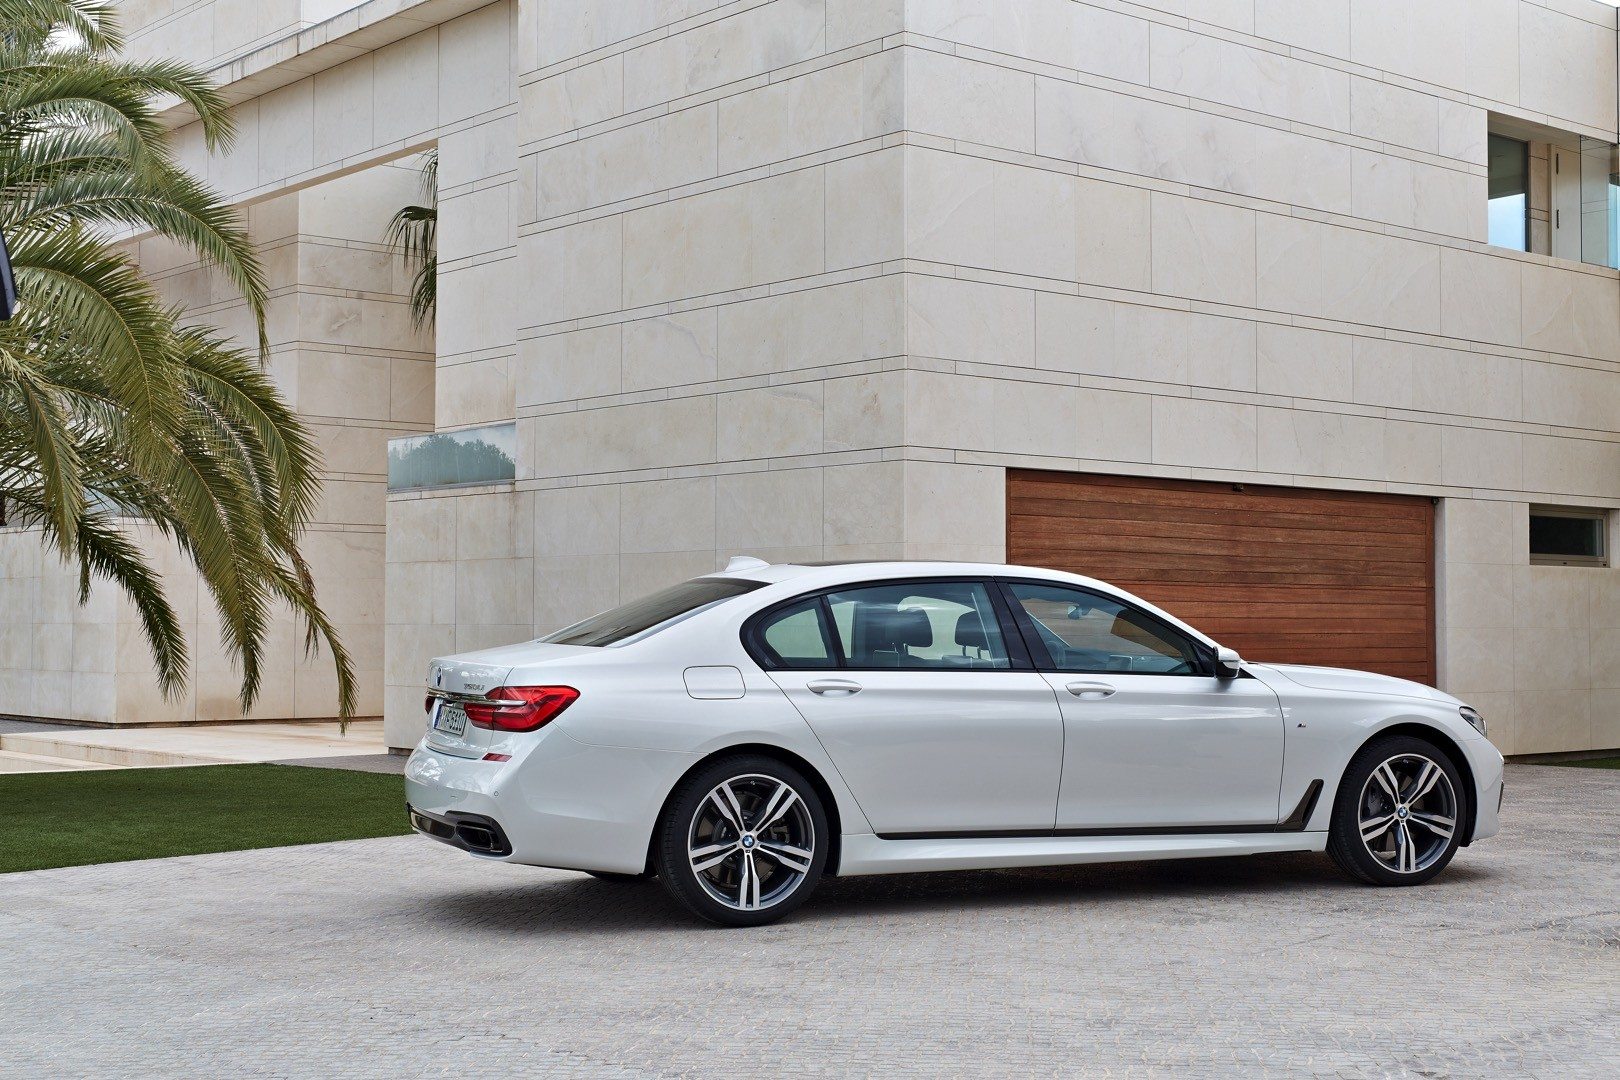 2016 BMW 7 Series Finally Officially Unveiled The Good Stuffs